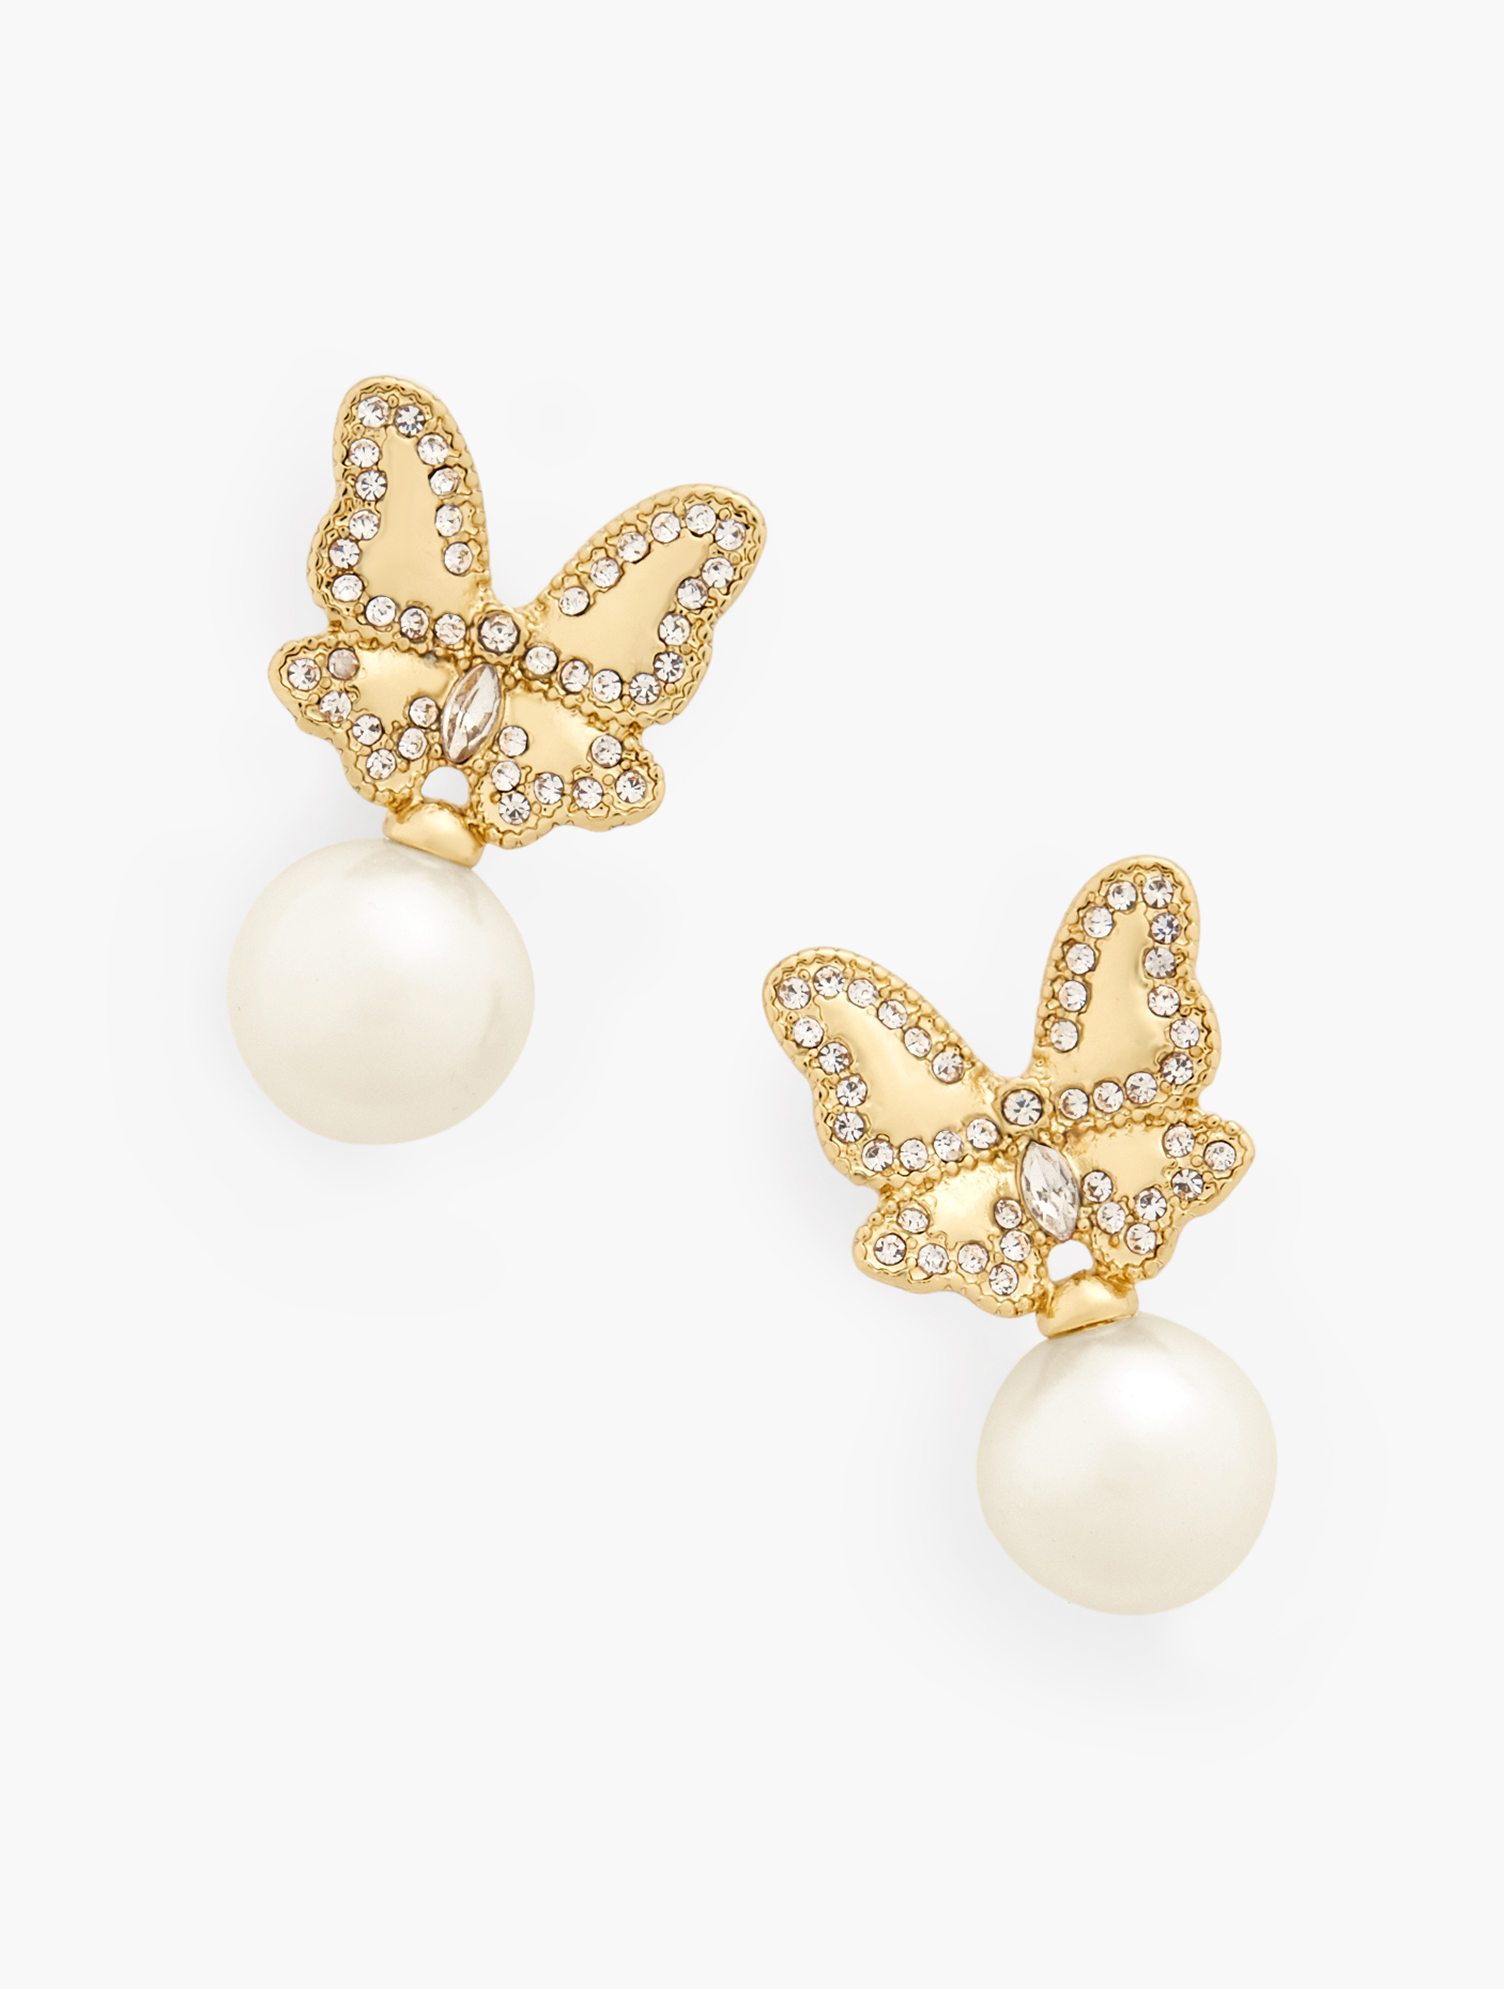 Delicate butterflies atop lustrous pearls. Add our Butterfly Pendant or Butterfly Brooch to complete your look. Features Clasp: Post Imported Fit: 1 1/2 inches Drop Material: 50% Zinc, 49% Glass, 1% CZ Butterfly Pearl Earrings - Ivory - 001 Talbots